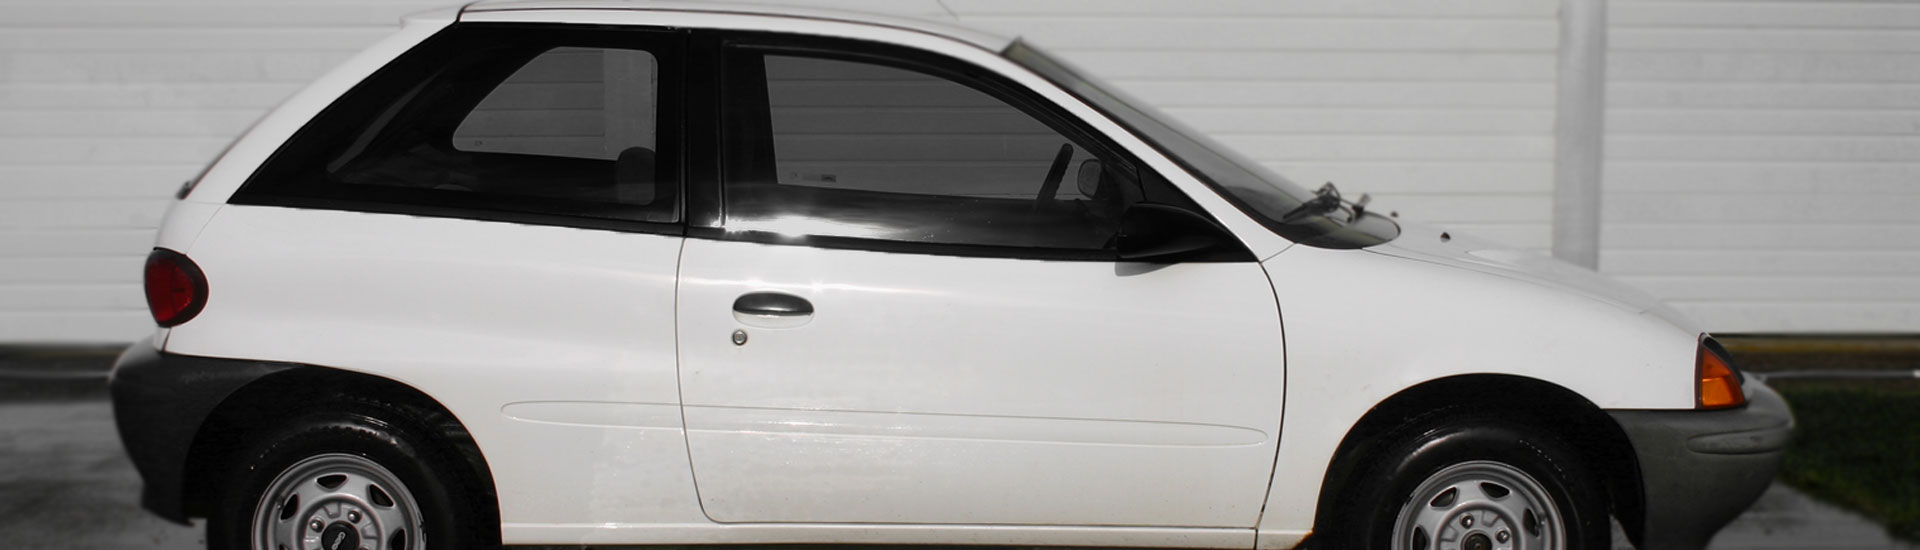 Geo Metro Window Tint